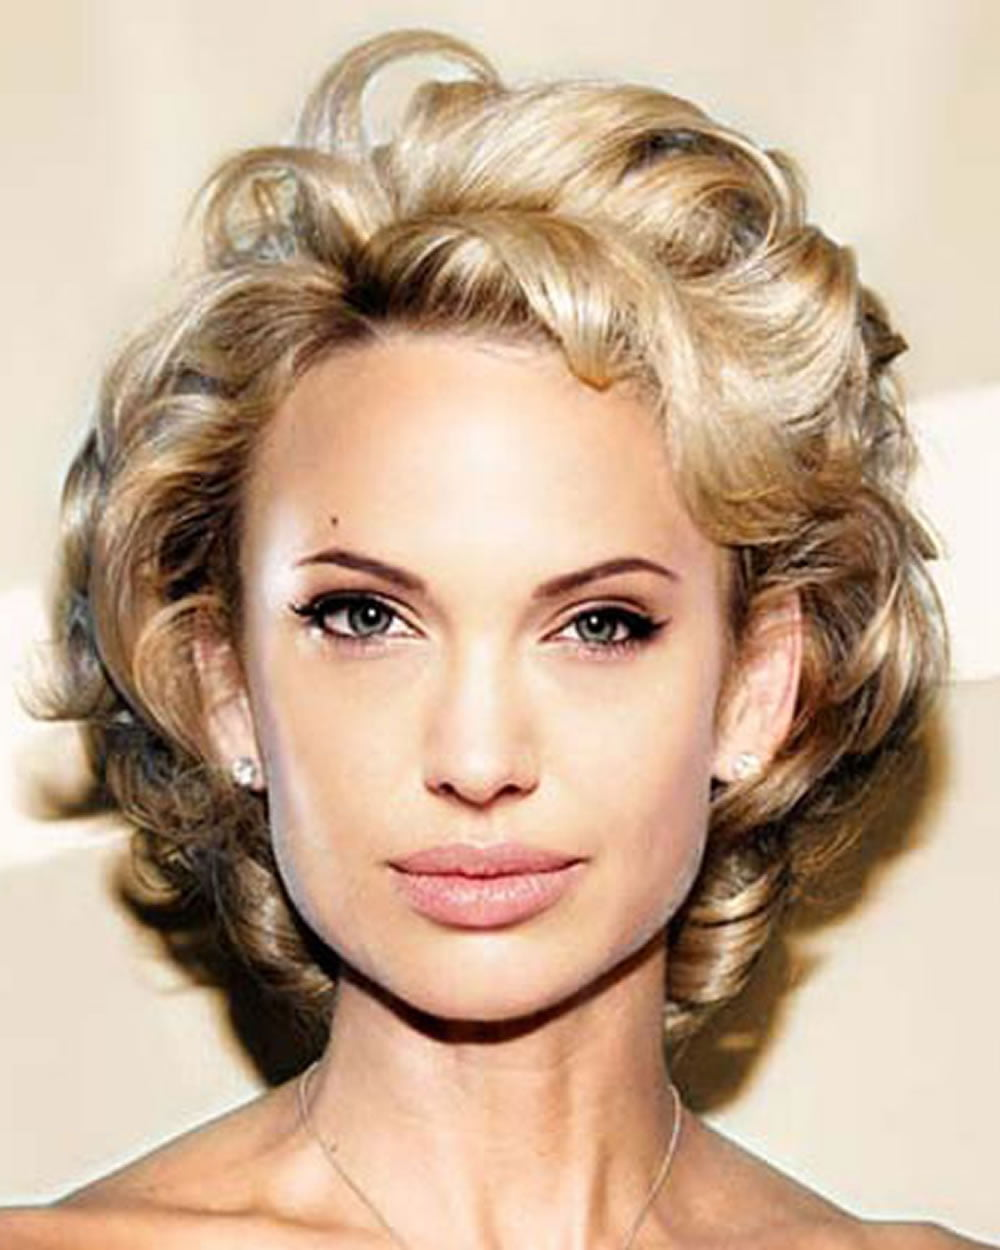 2018 Permed Hairstyles for Short Hair - Curly Short Haircut